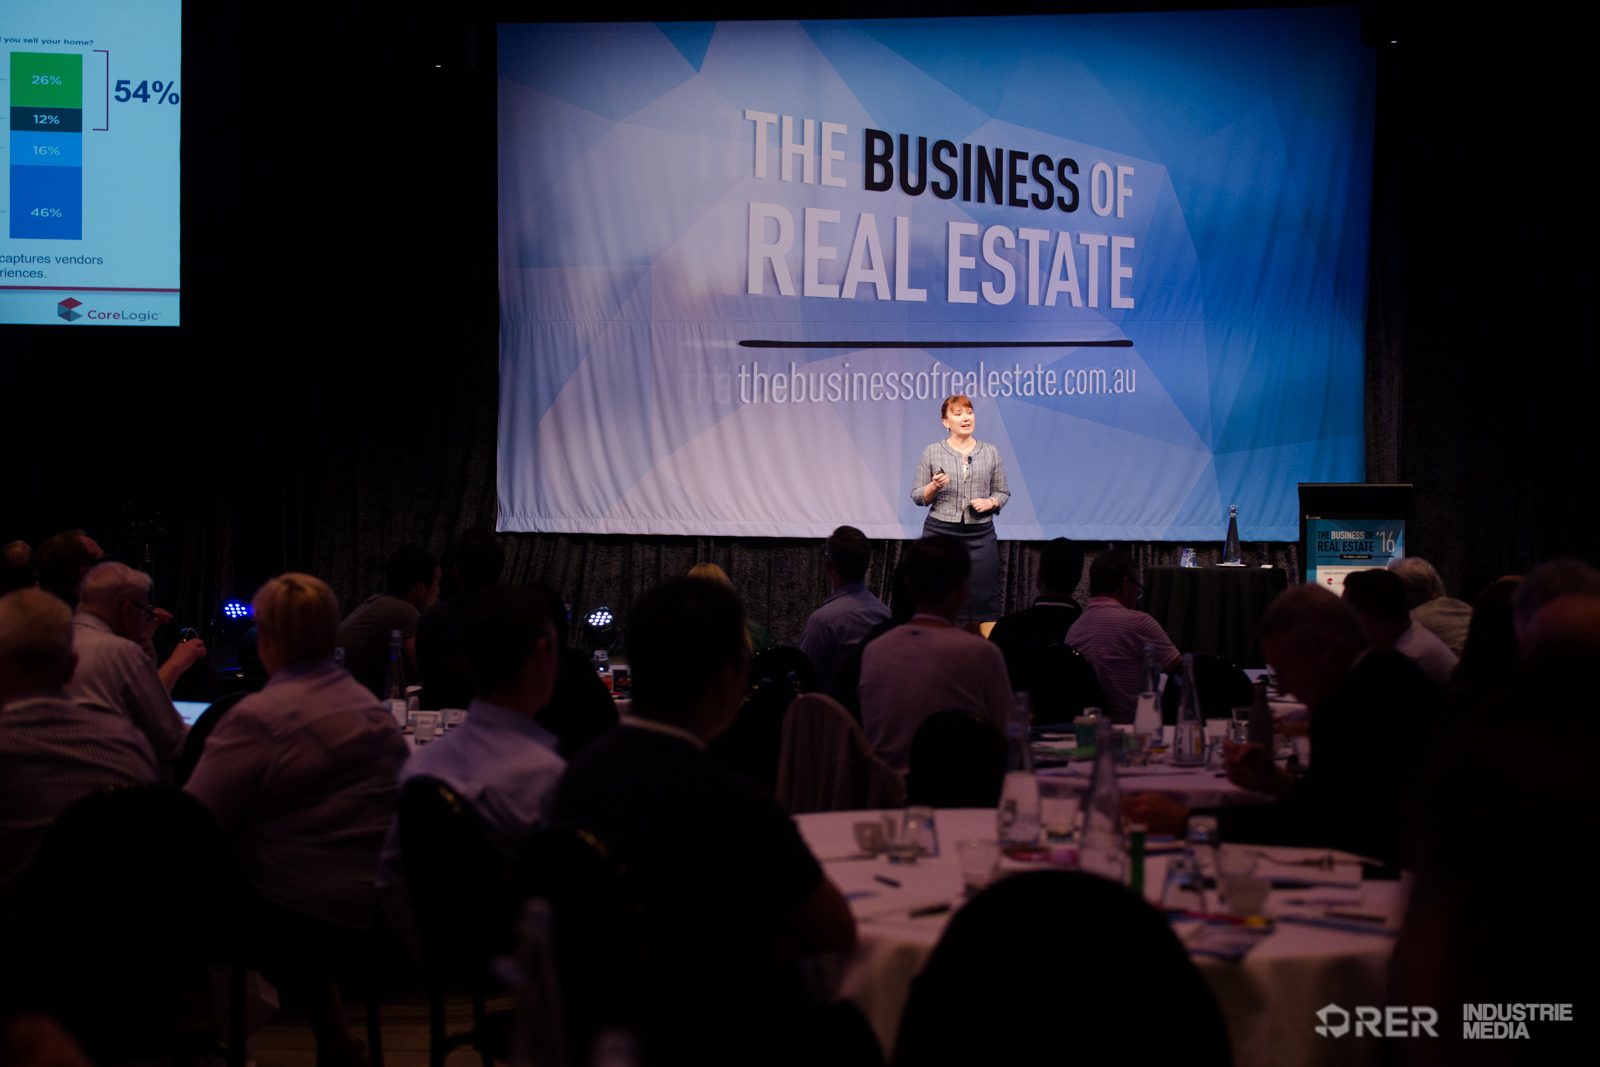 http://www.thebusinessofrealestate.com.au/wp-content/uploads/2016/09/RER_BUSINESS_OF_REAL_ESTATE_DAY_2-55.jpg